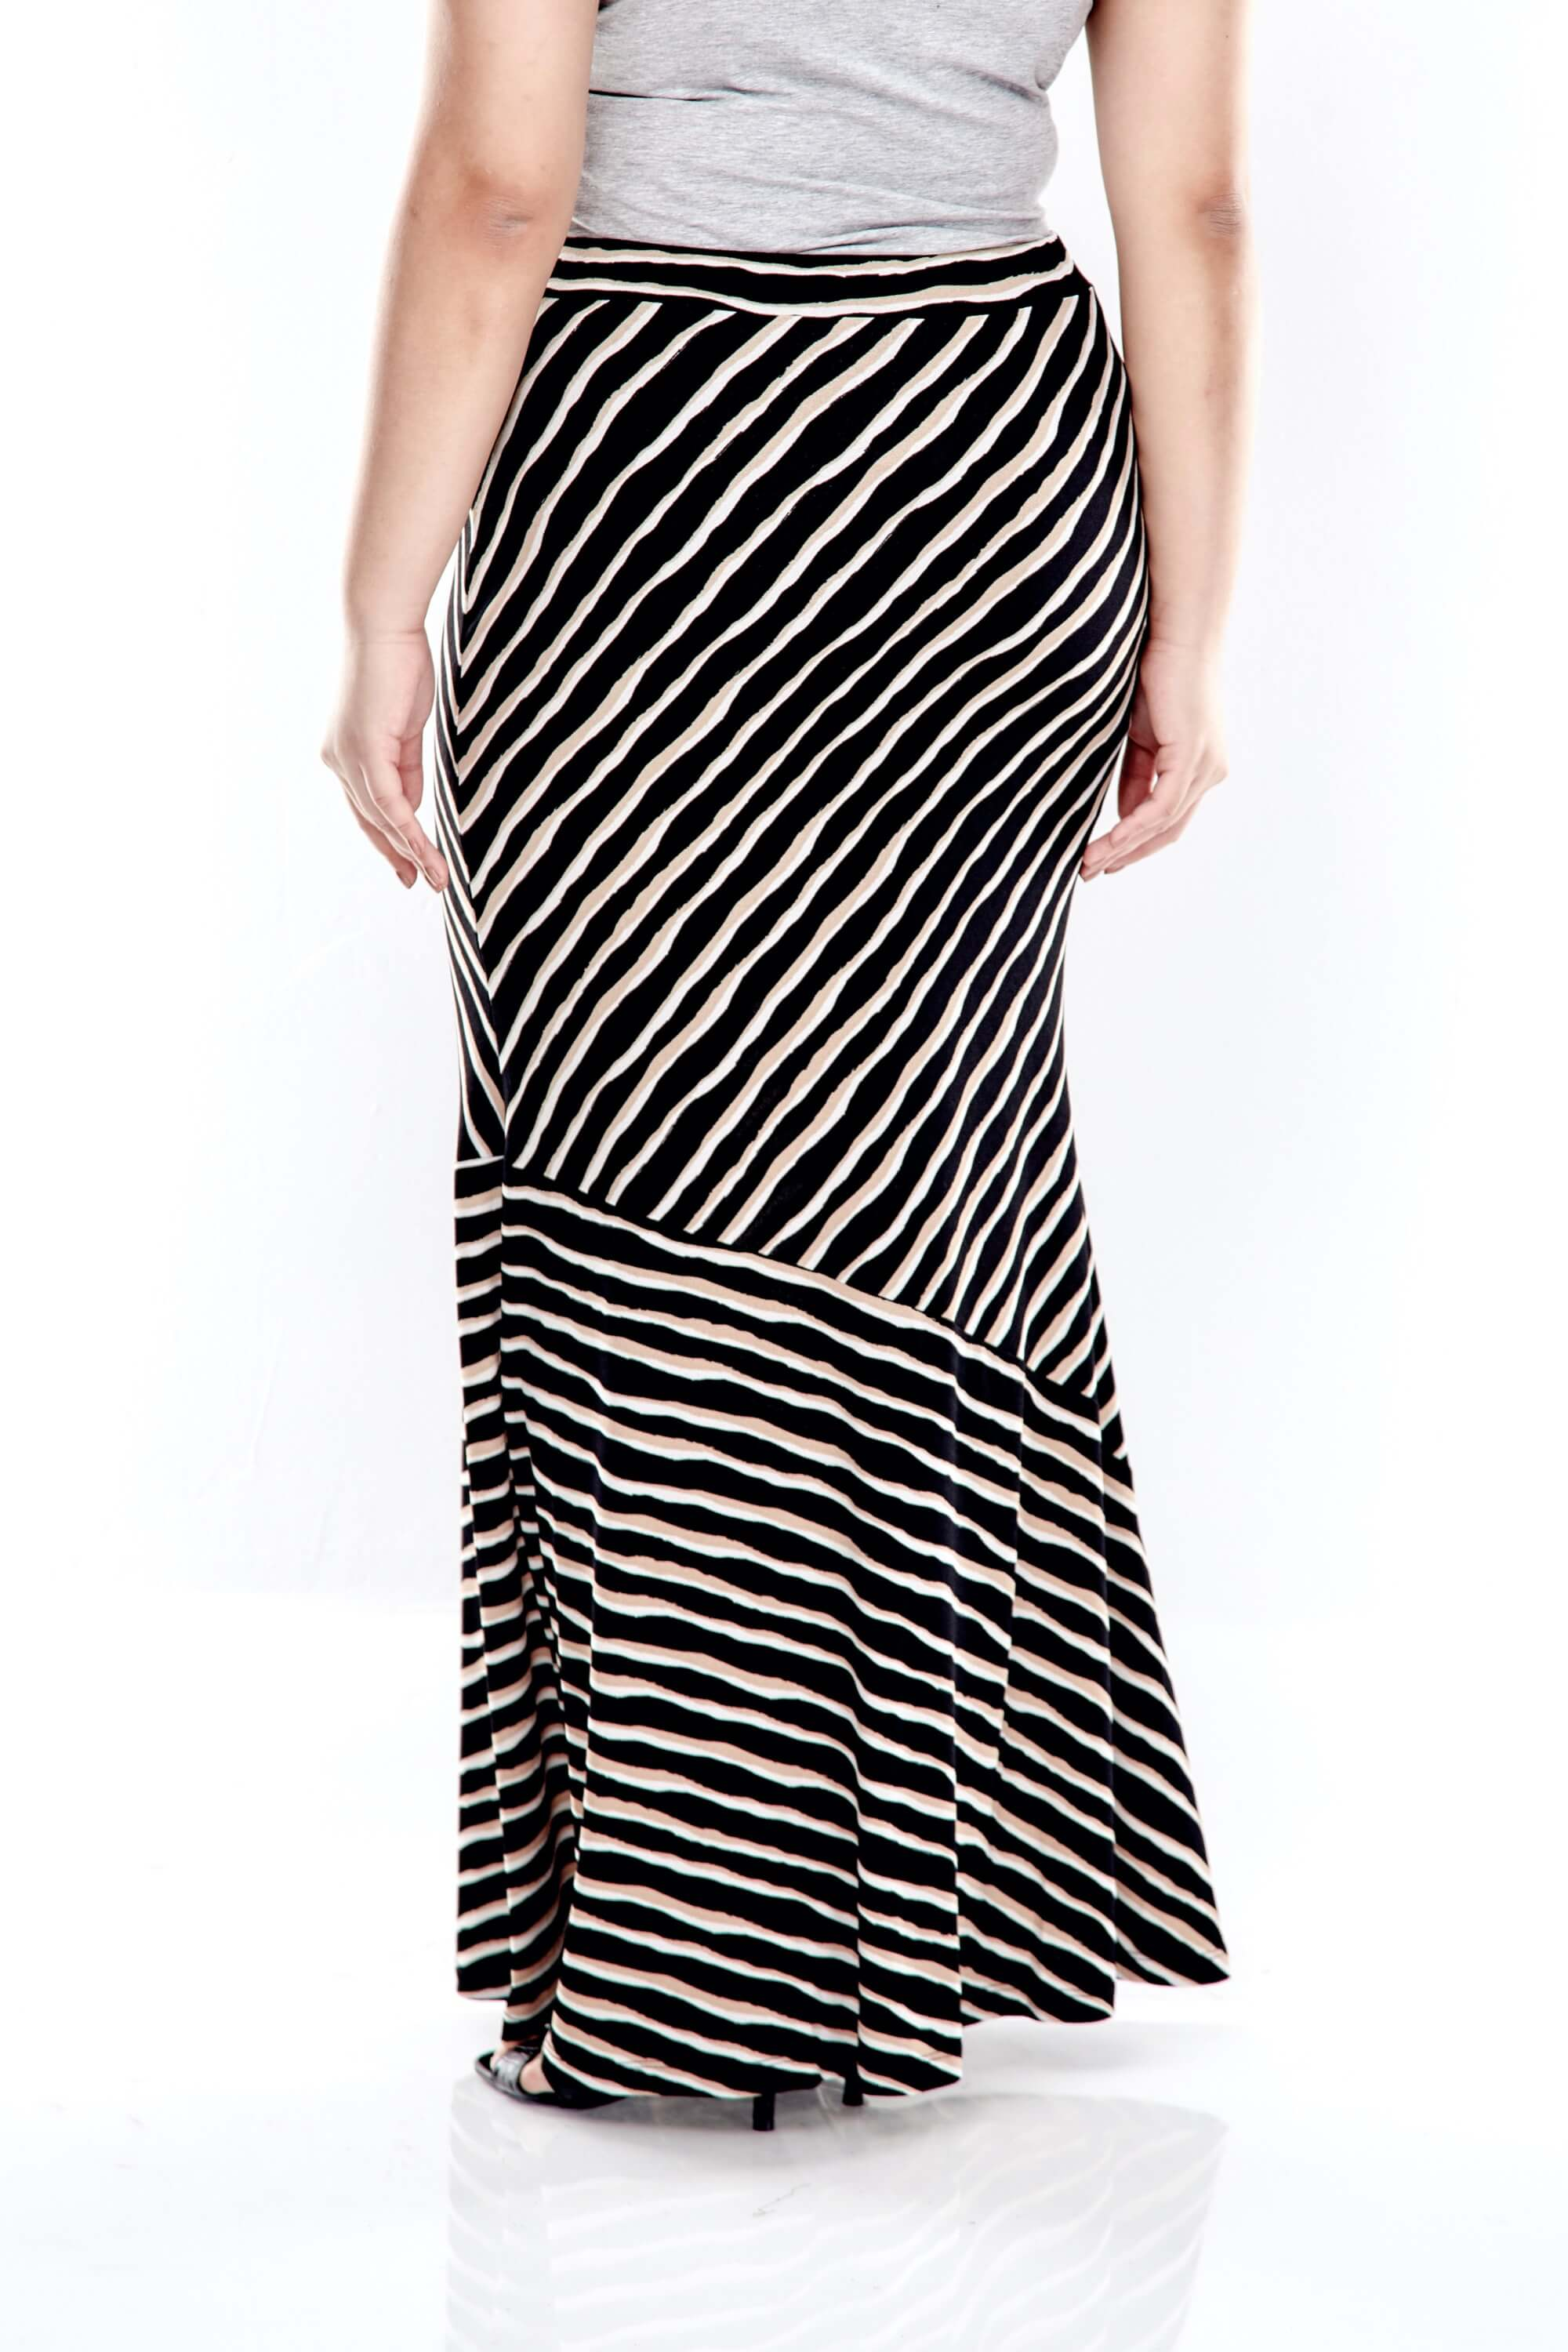 Brown Striped Long Skirt With Cut At Bottom 2